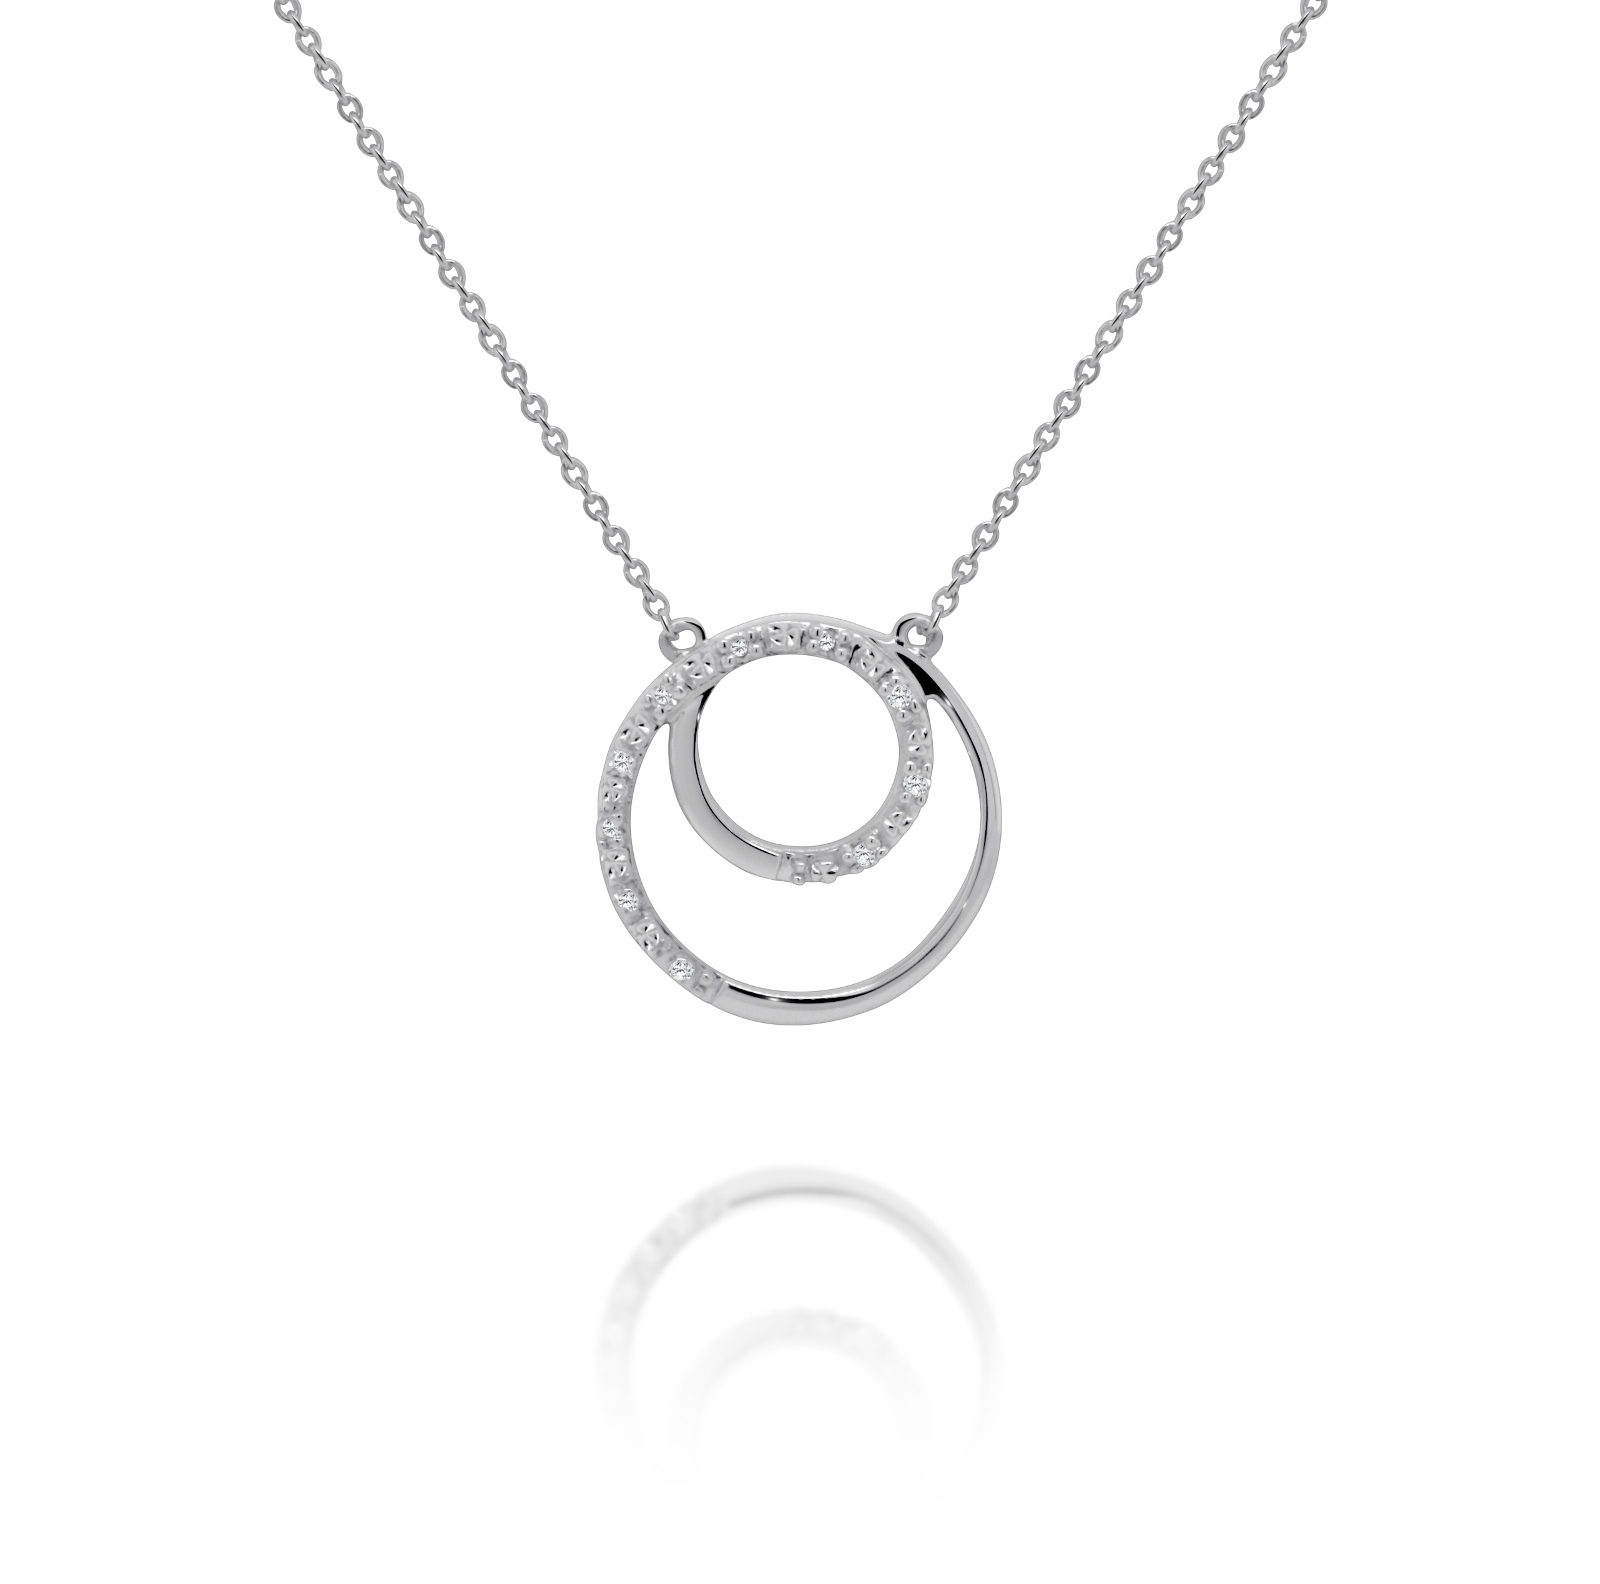 Swirl Necklace - $399